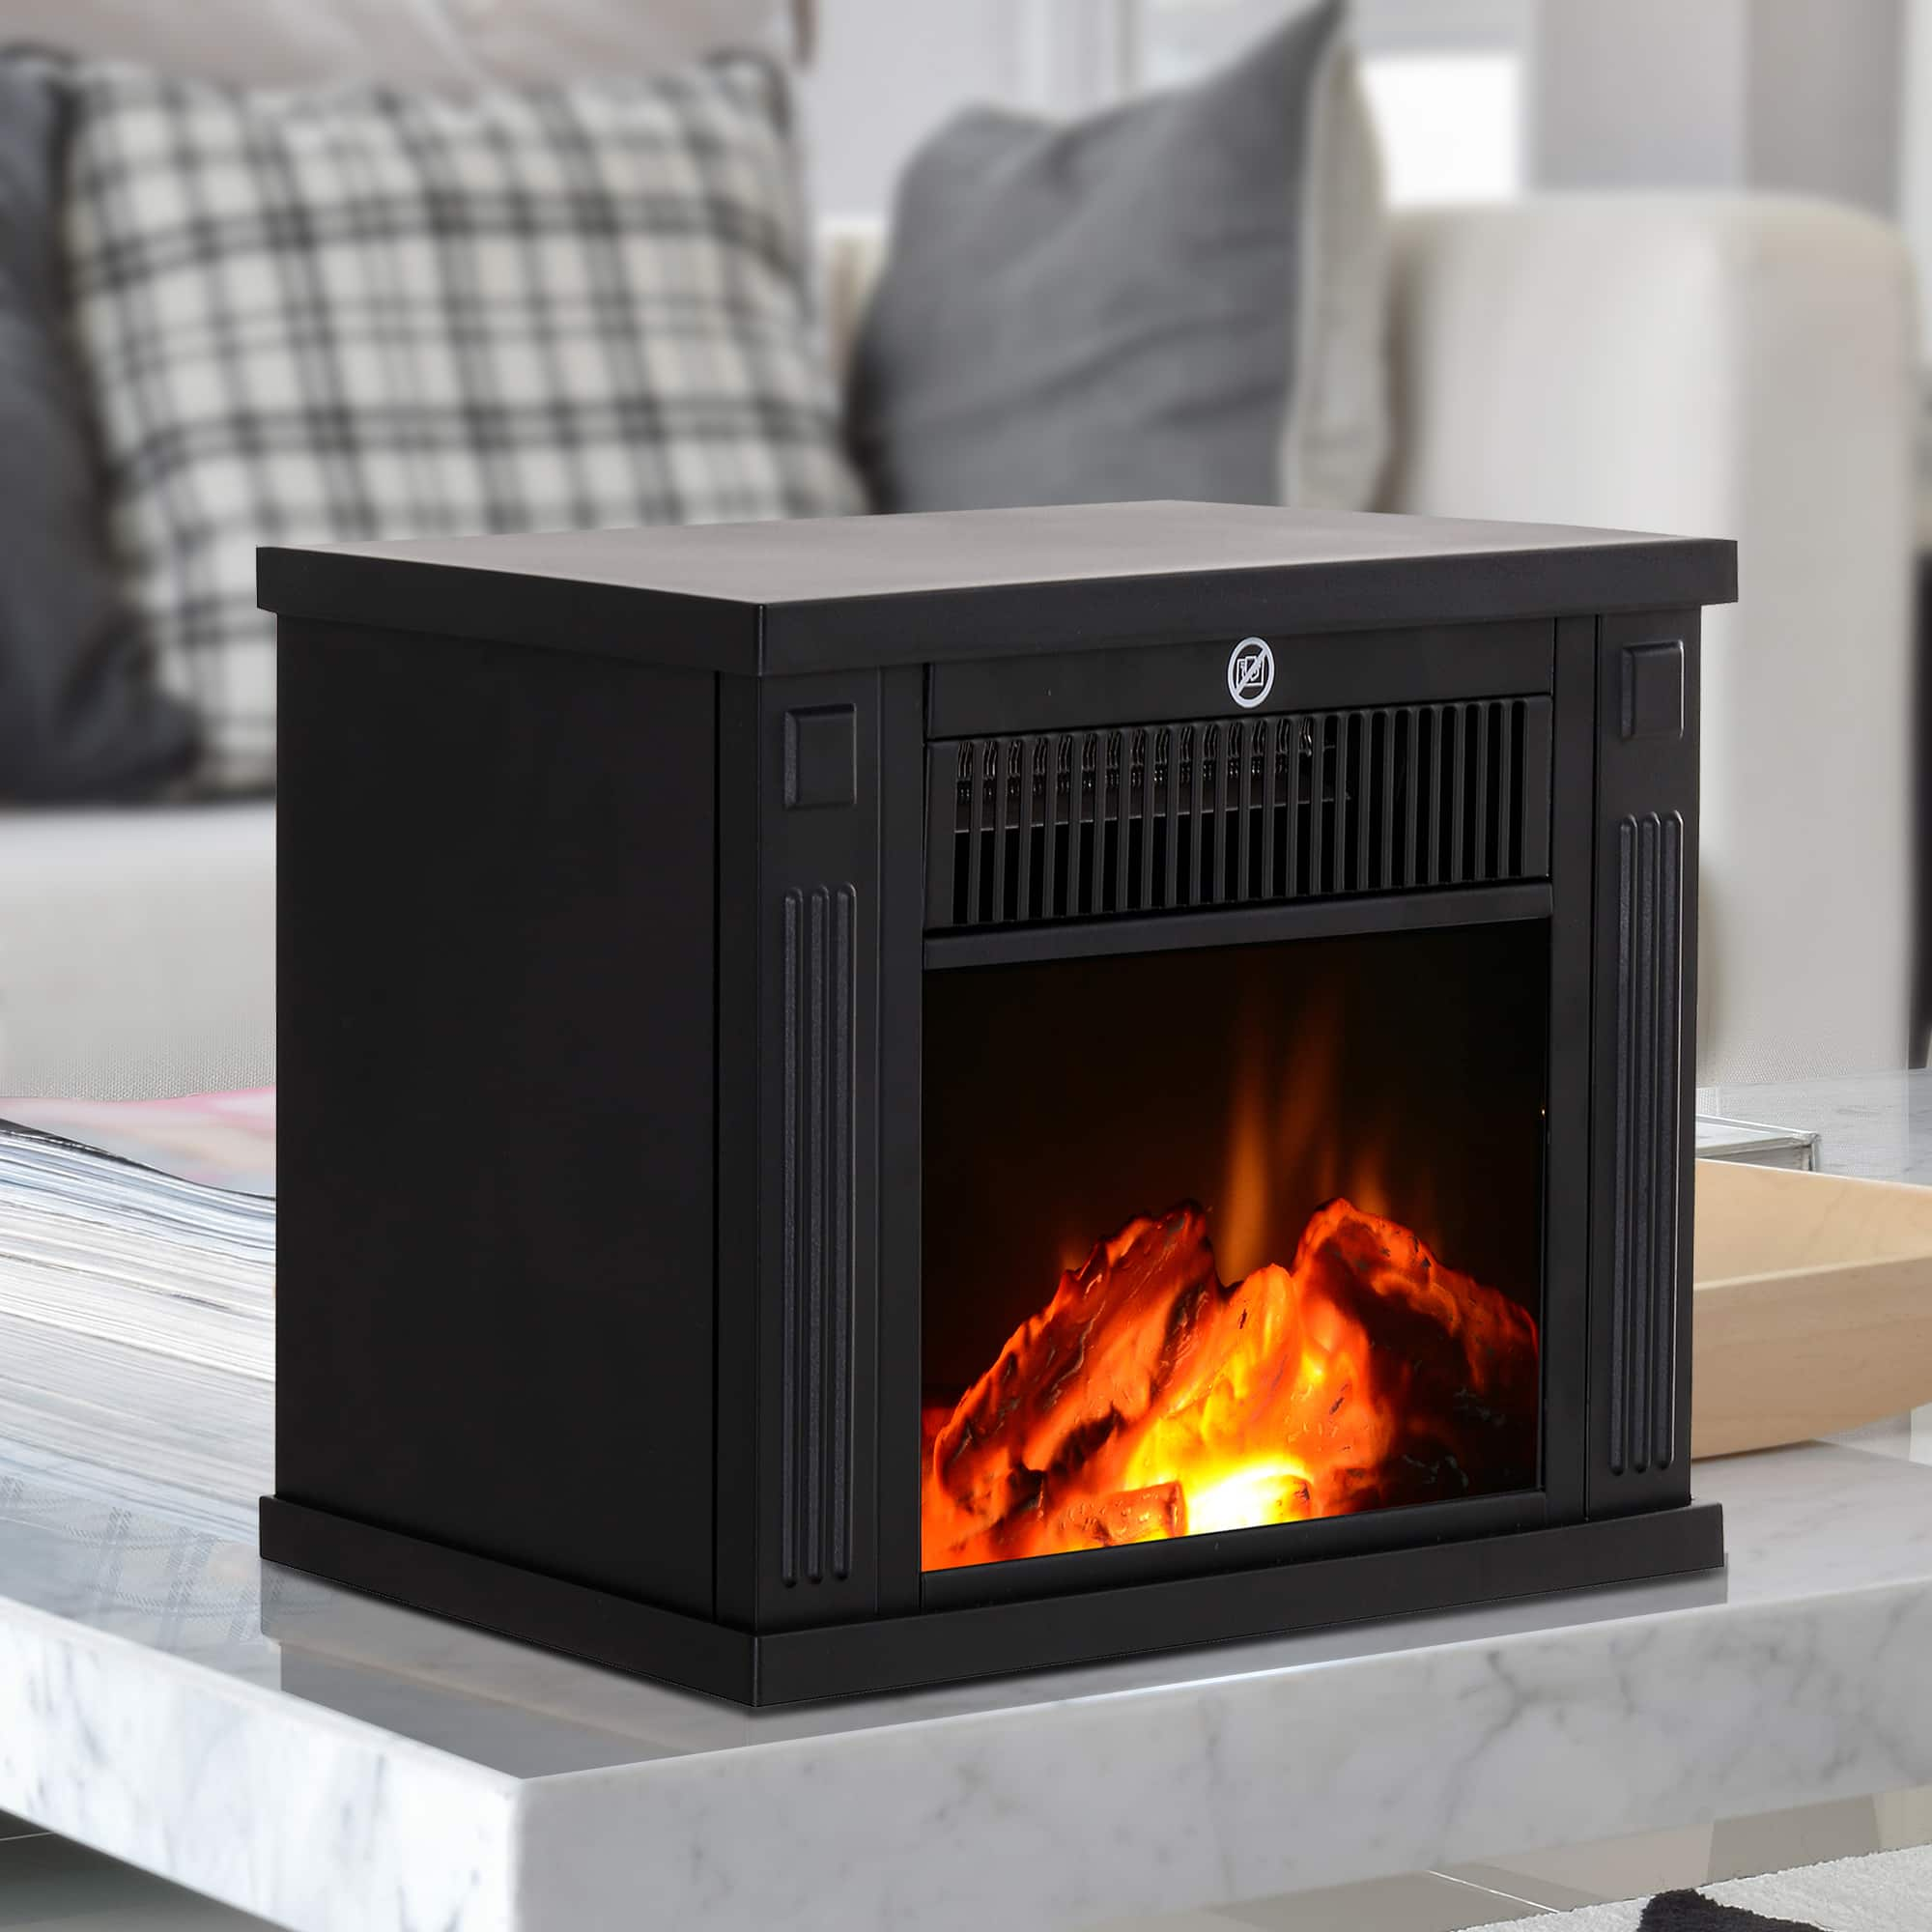 """HomCom 14"""" 1000W Electric Wood Stove Fireplace Heater - $49.99 + Free Shipping"""